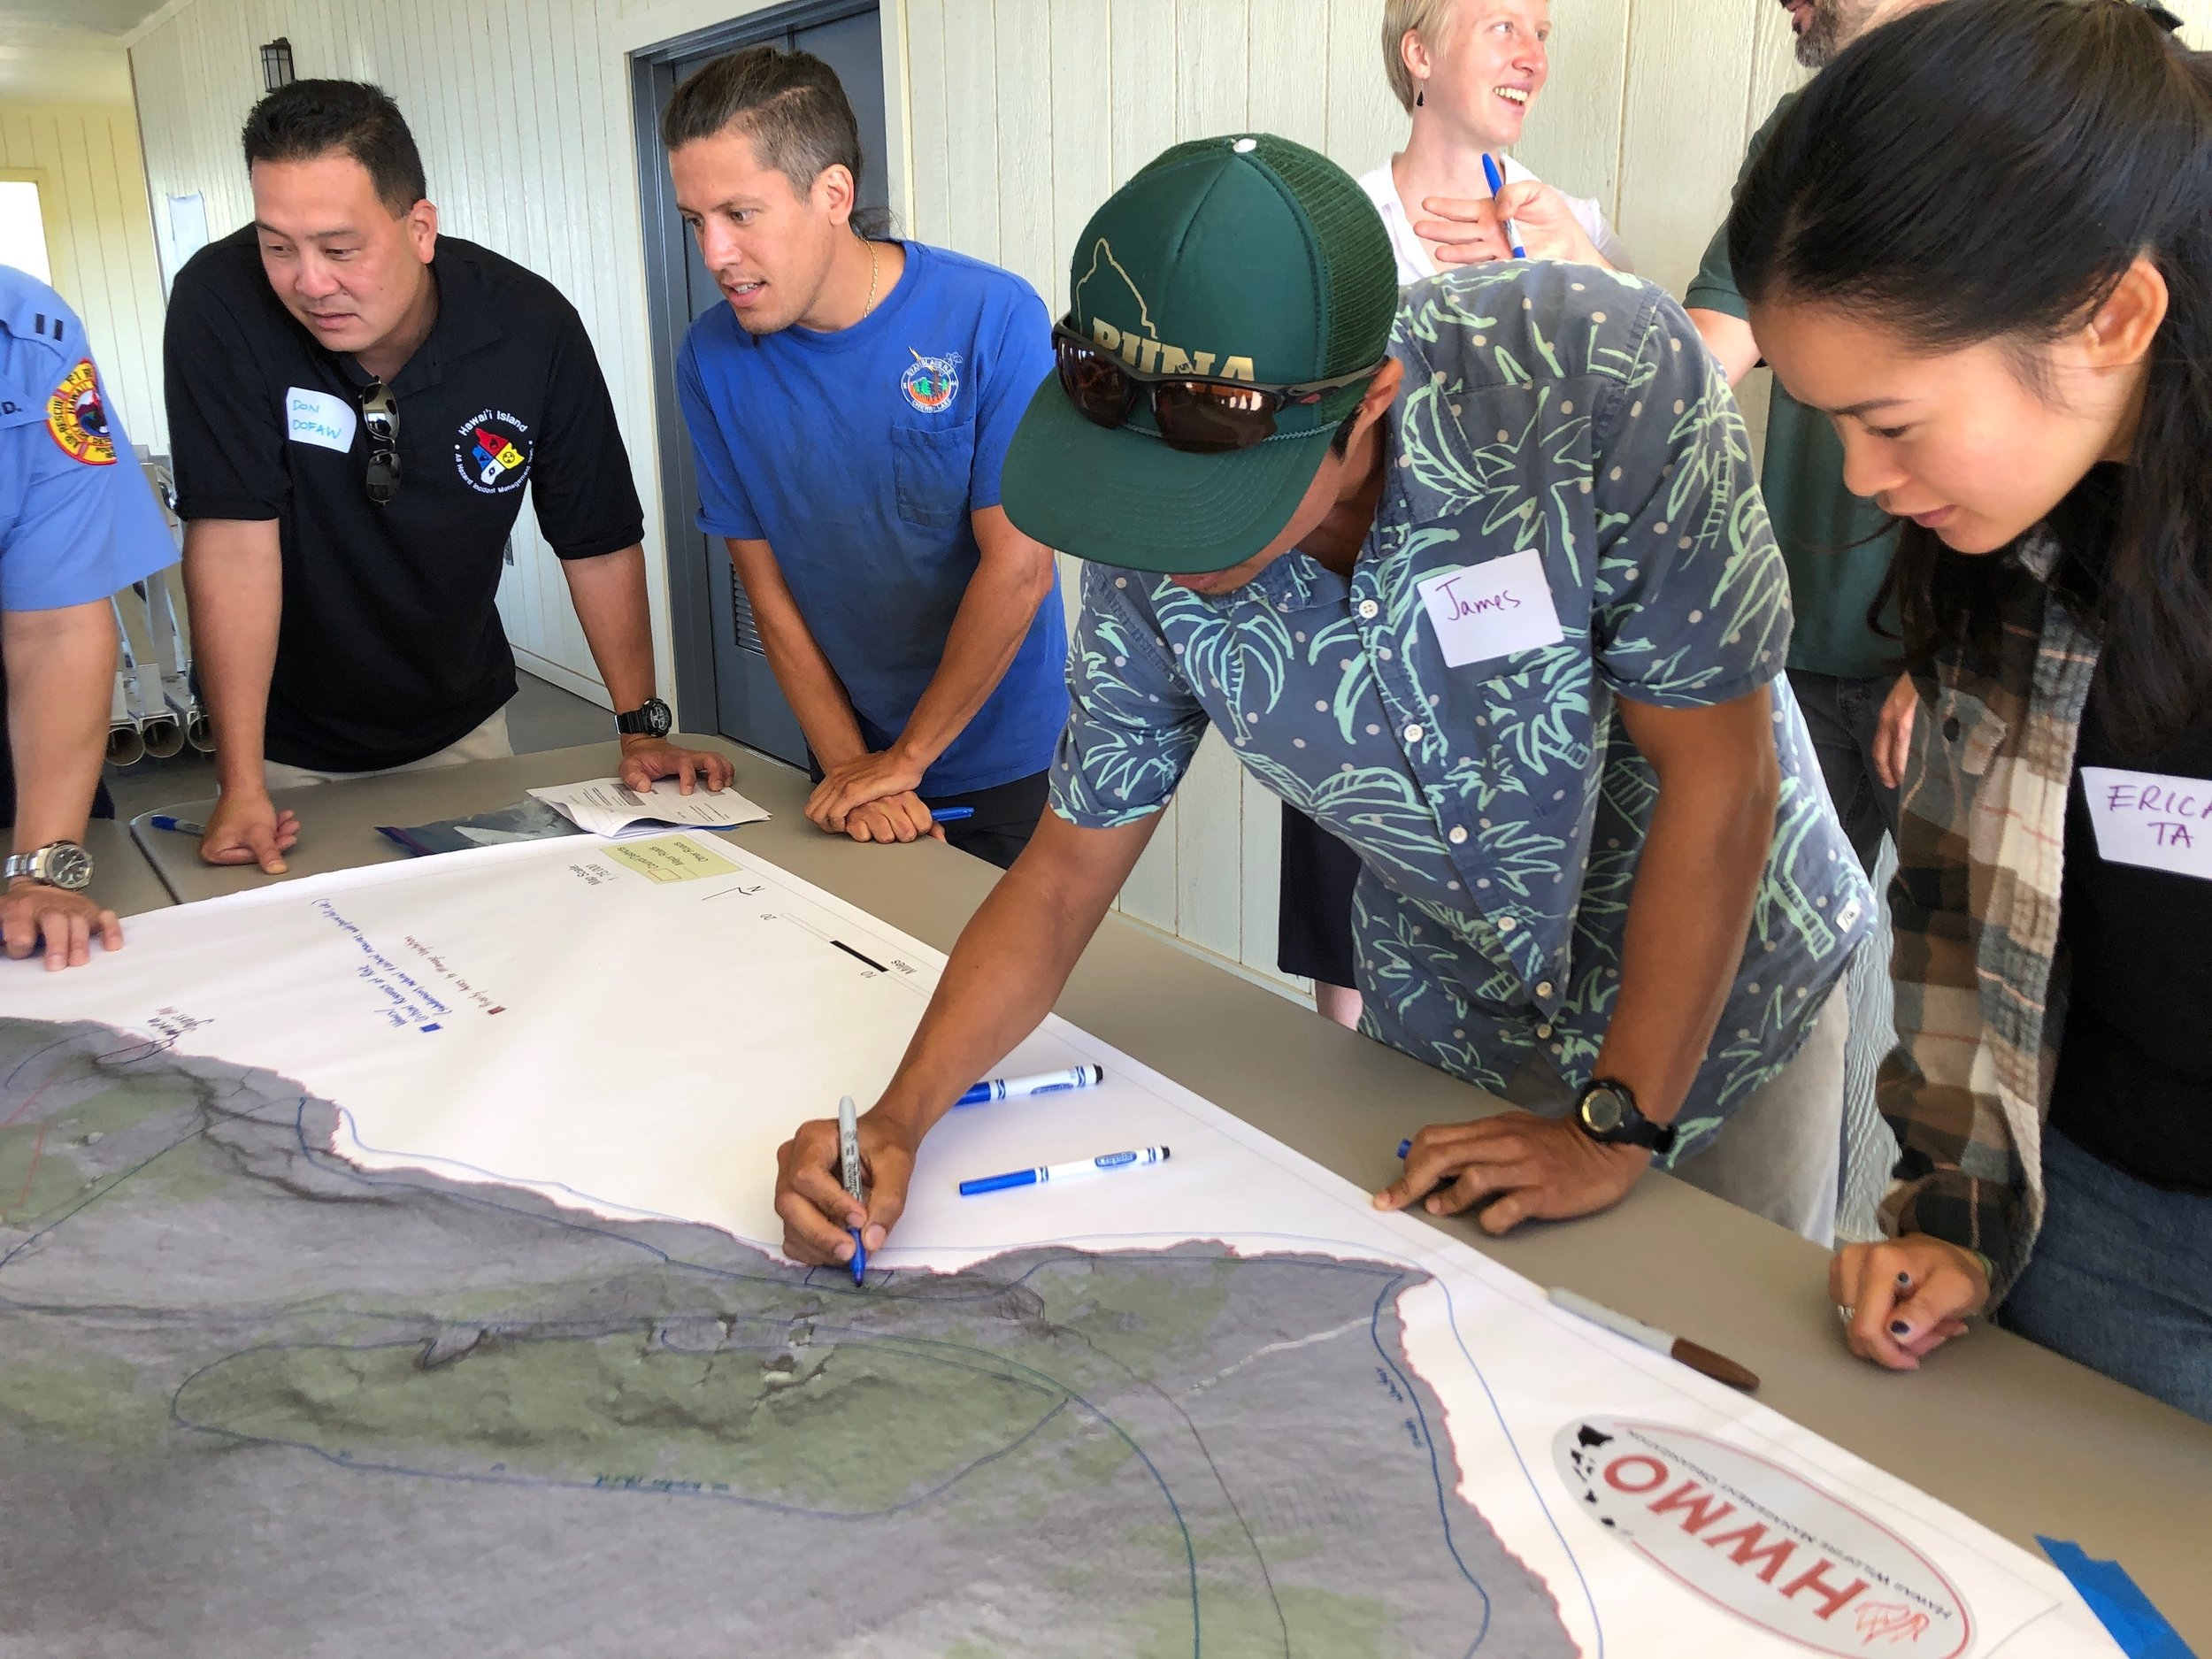 Hawaii Island Kailapa Vegetative Fuels Management Collaborative Action Planning Workshop_2_26_2019_32.jpg